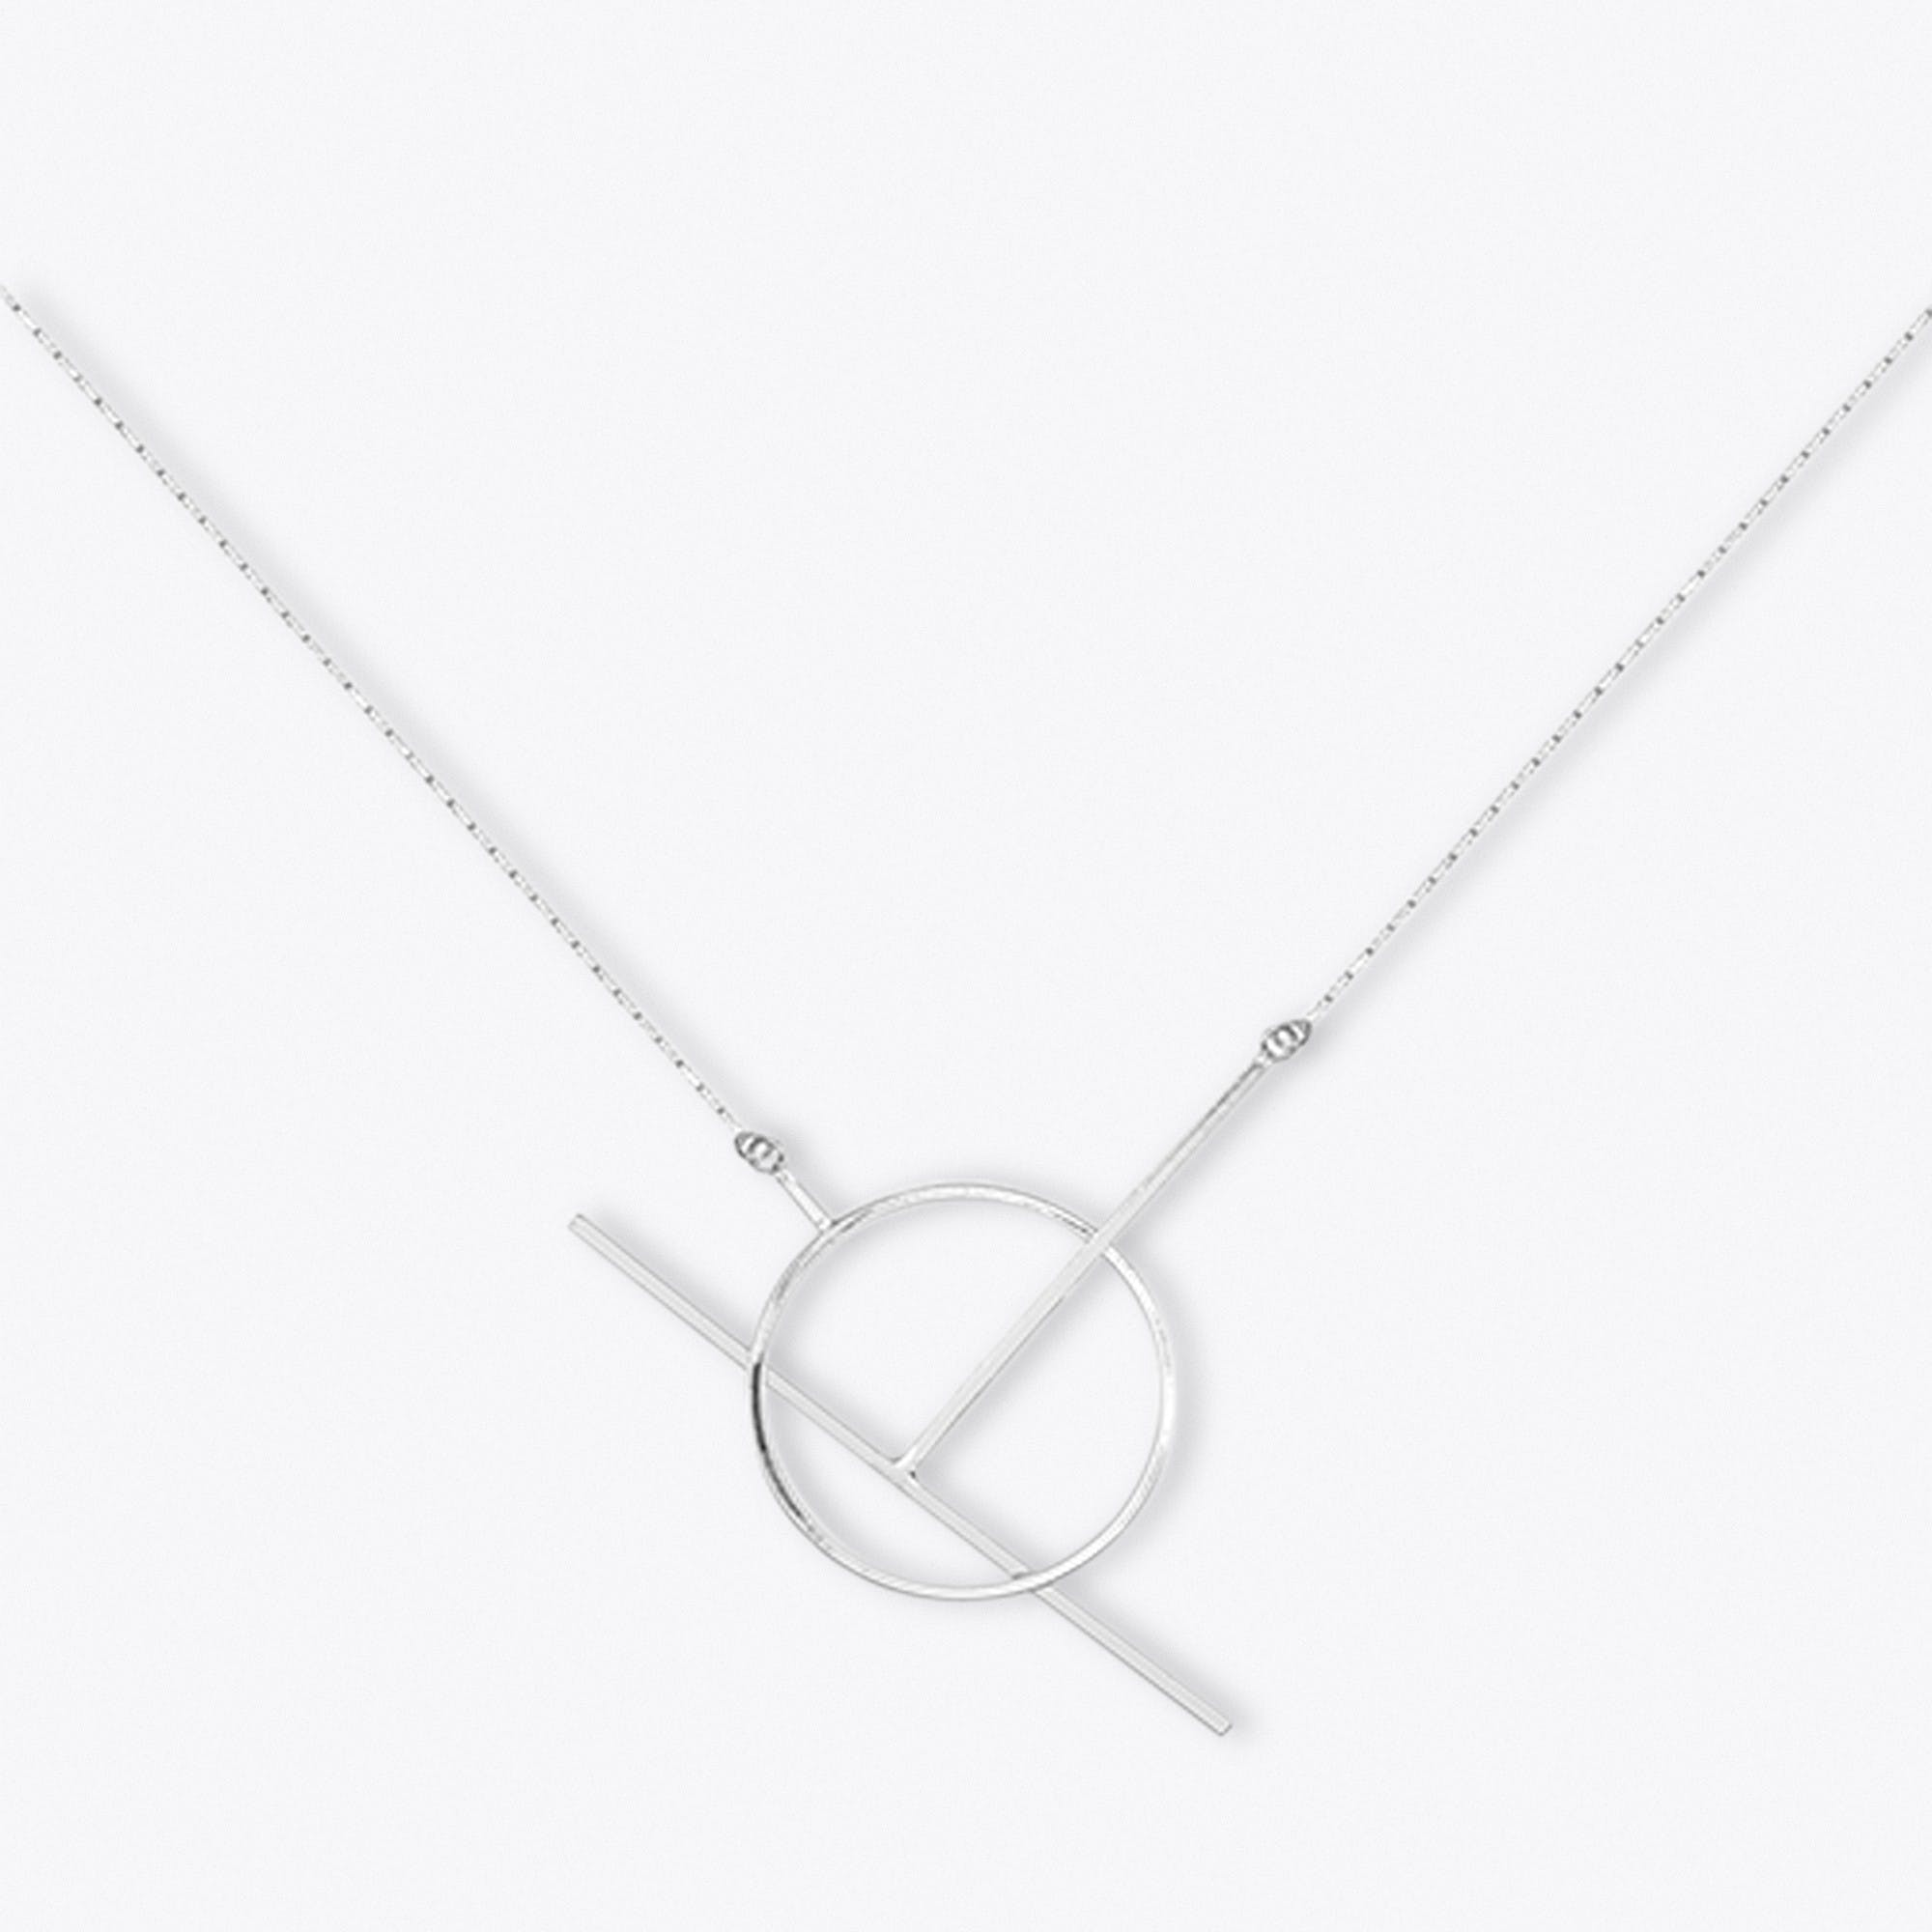 Silver Geometric Lariat Necklace